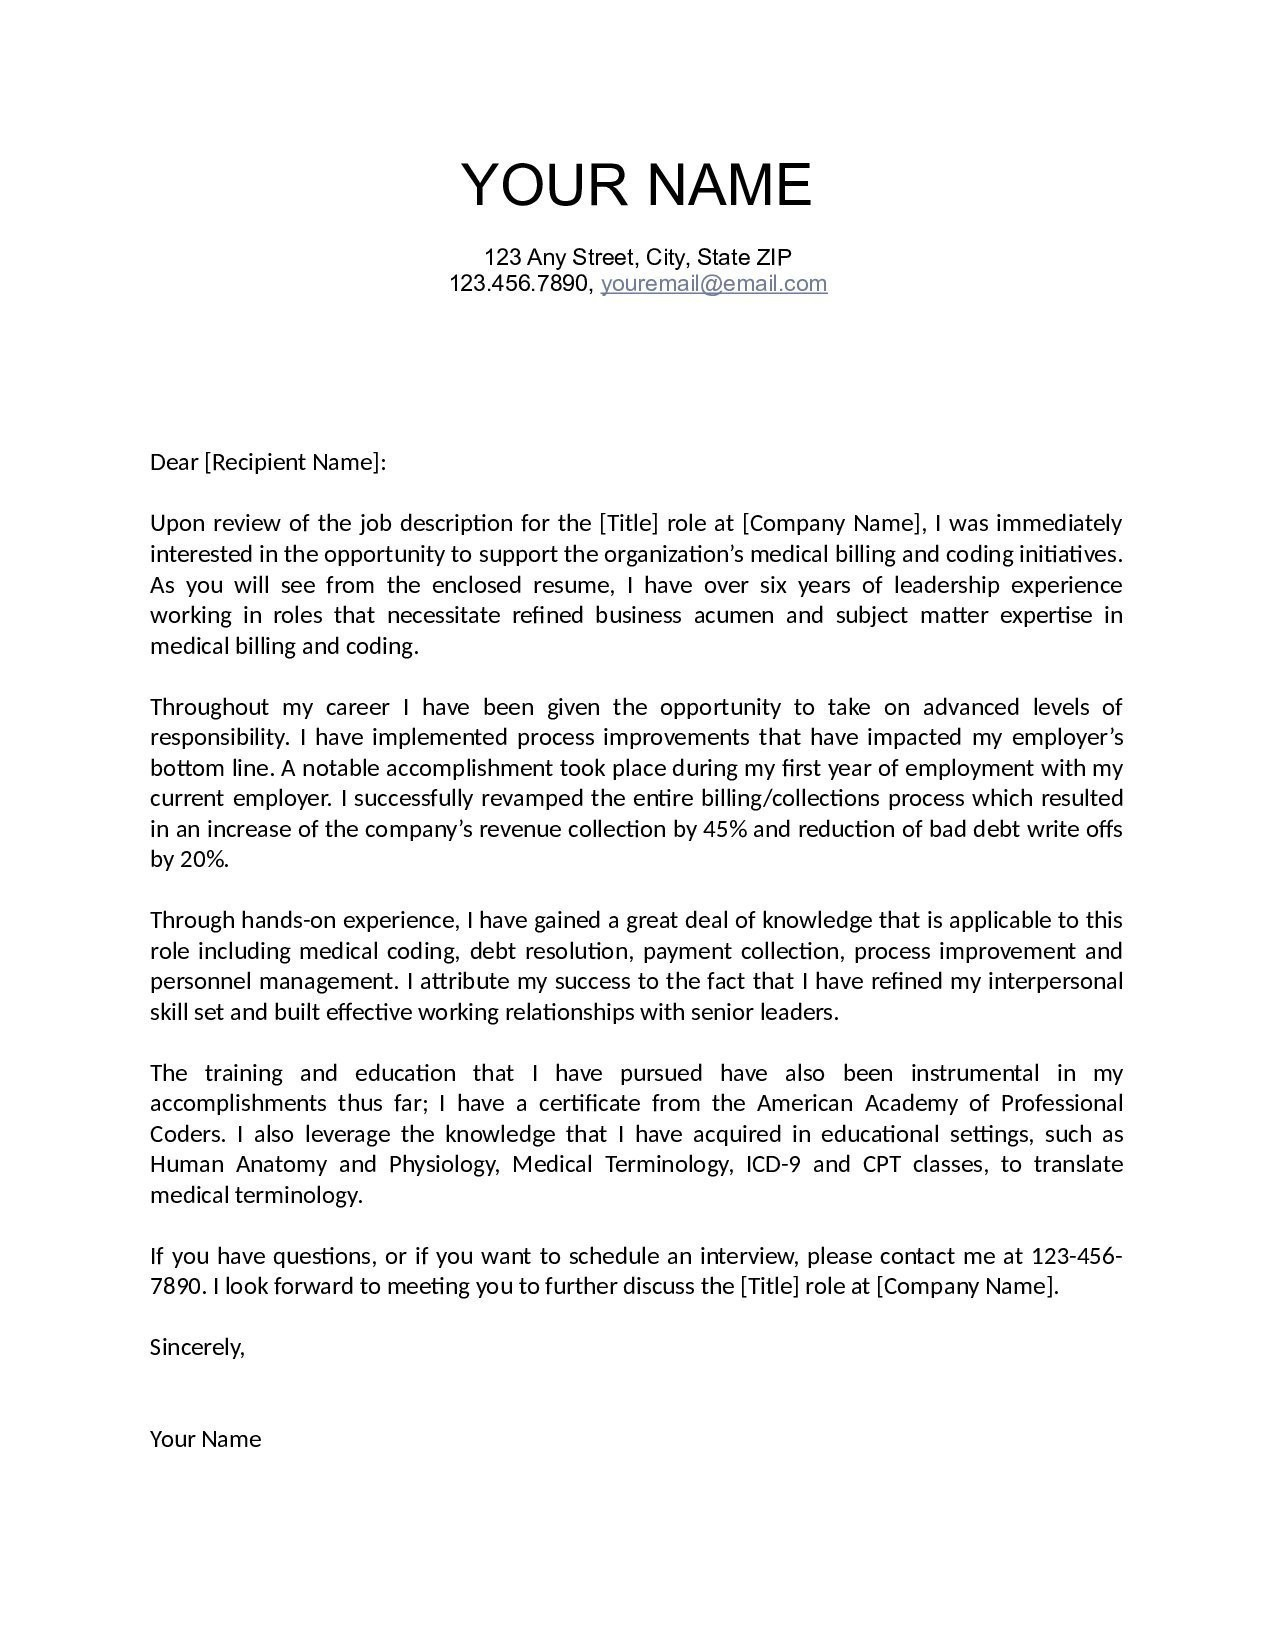 Internship Cover Letter Template - What Not to Put In A Cover Letter Beautiful Cover Letter Examples